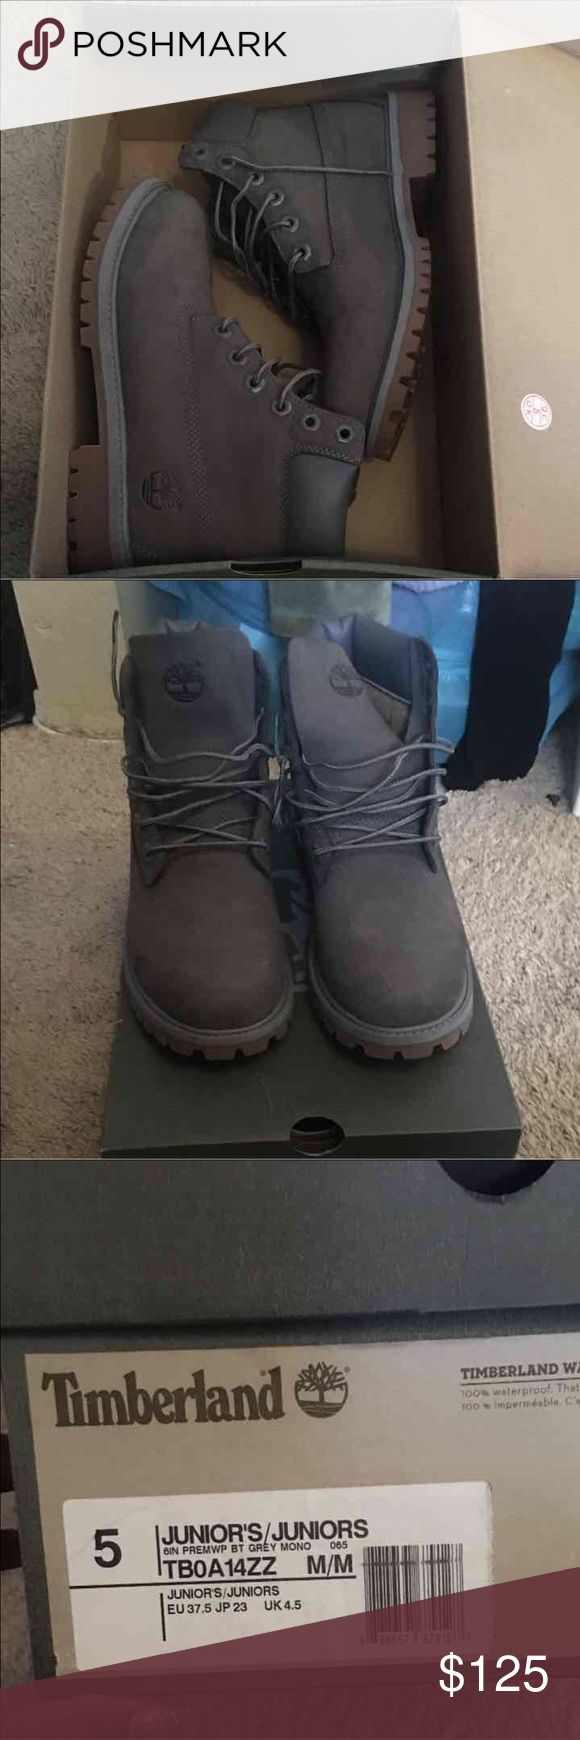 Grey Timberland Boots Brand new. Never worn out, just tried on. Size 5 in boys. Price negotiable. Timberland Shoes Boots